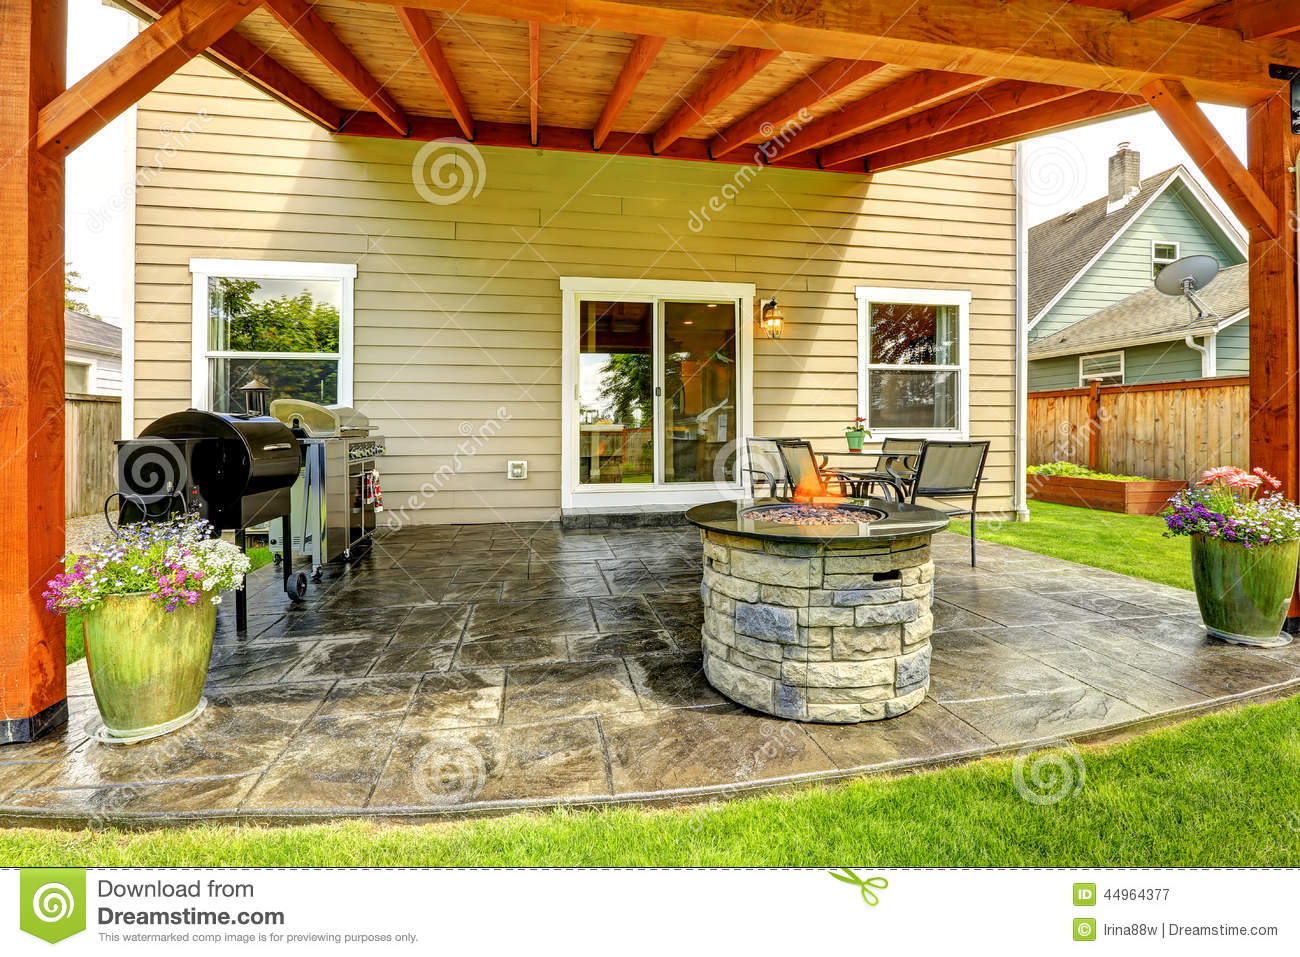 Pergola with patio area. Tile floor decorated with flower pots. Stone ...